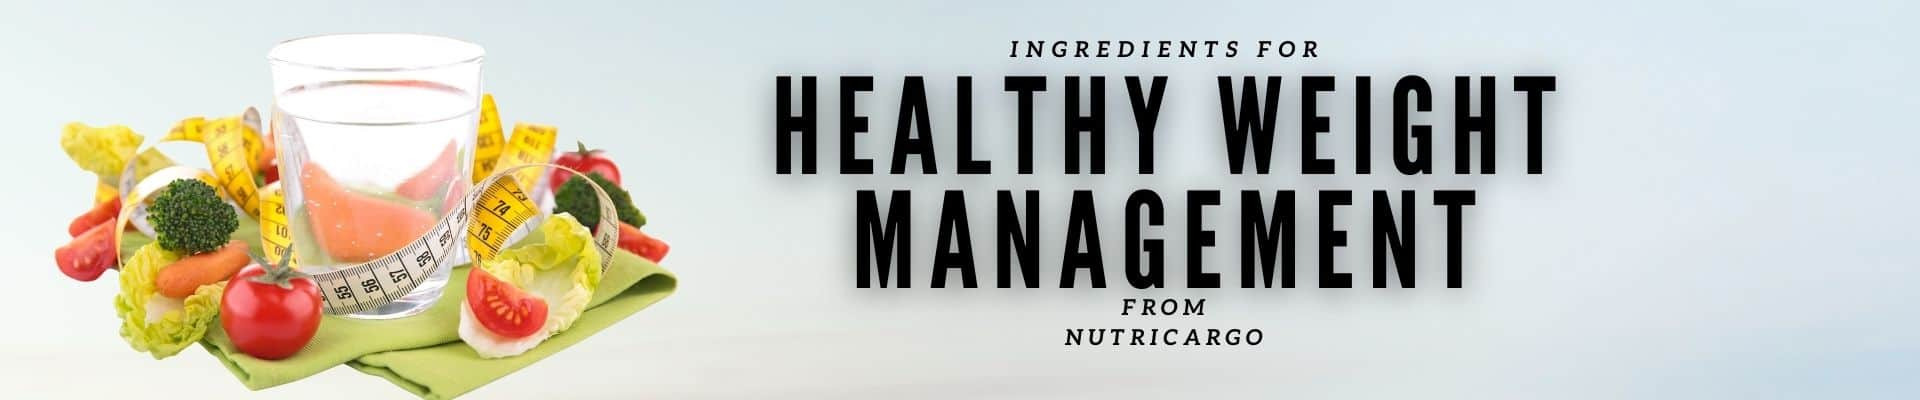 Shop Ingredients For Healthy Weight Management From NutriCargo, LLC